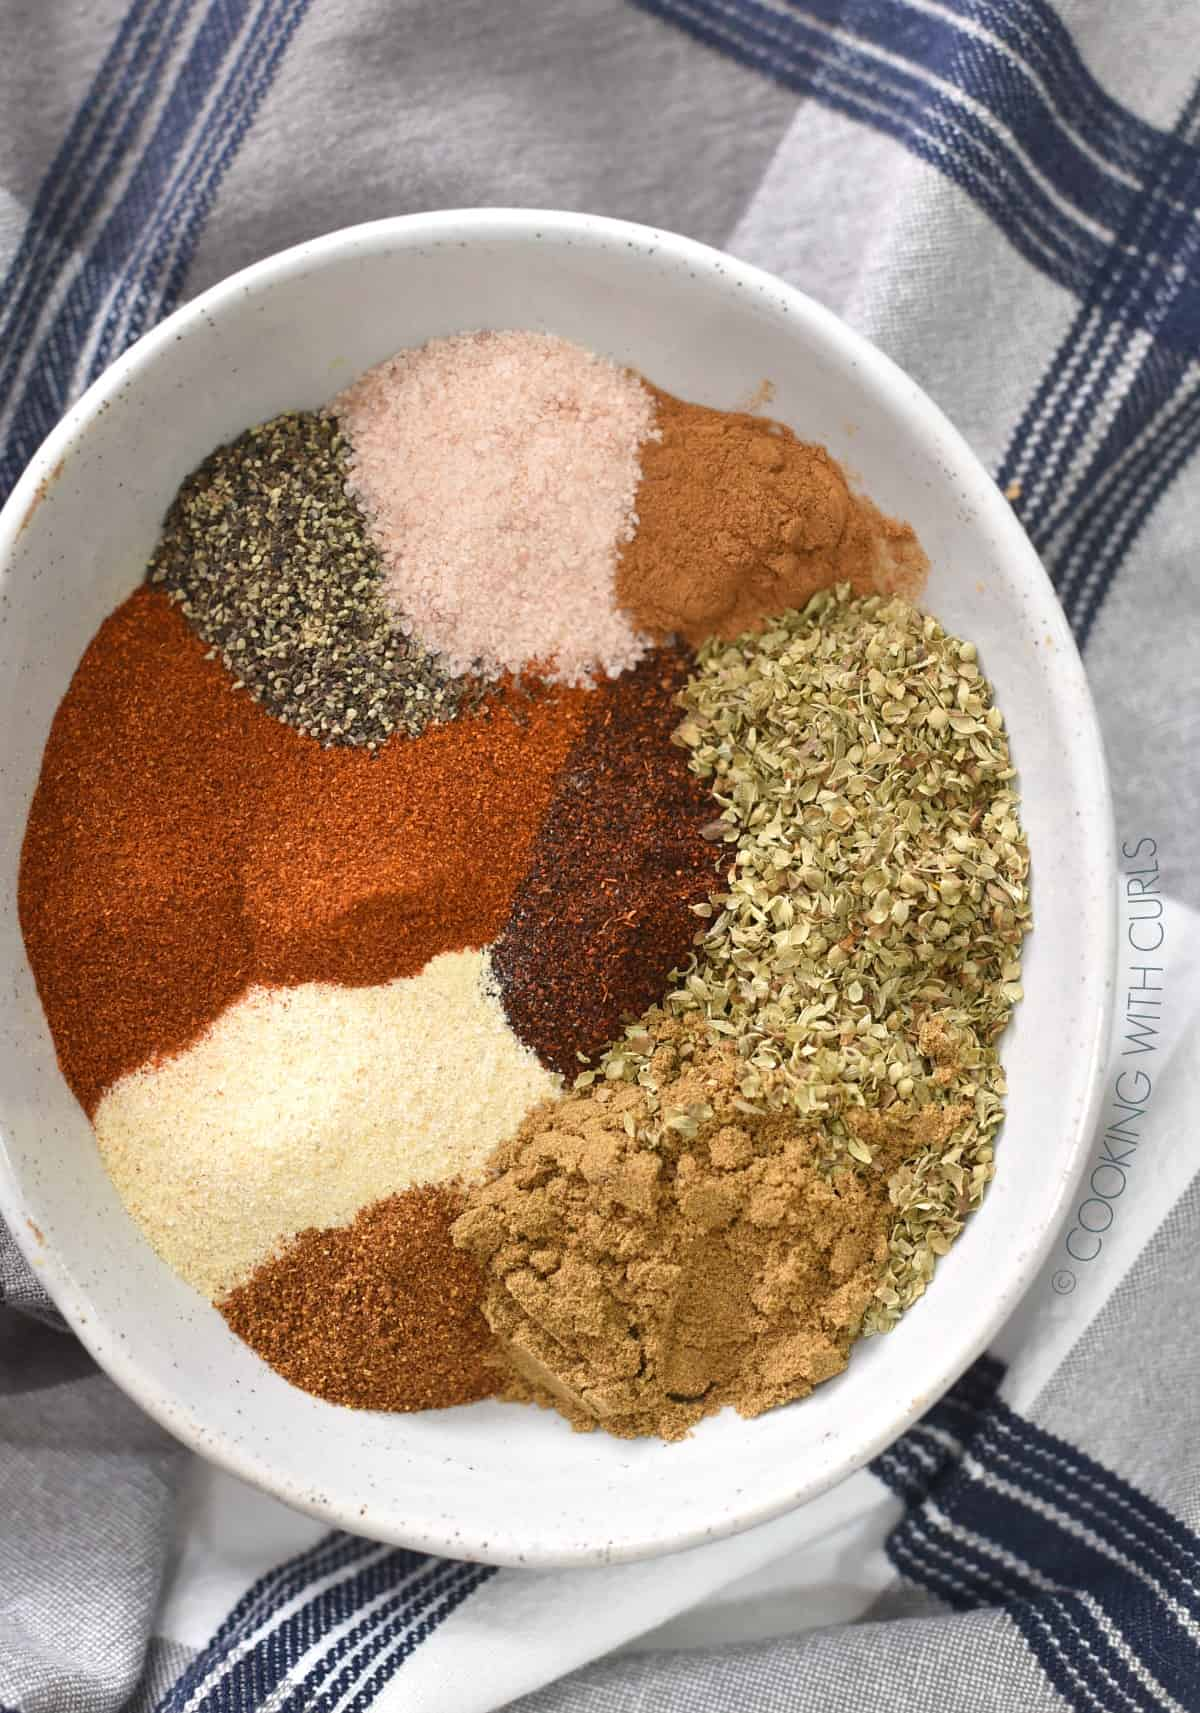 Looking down on a bowl with piles of seasonings.